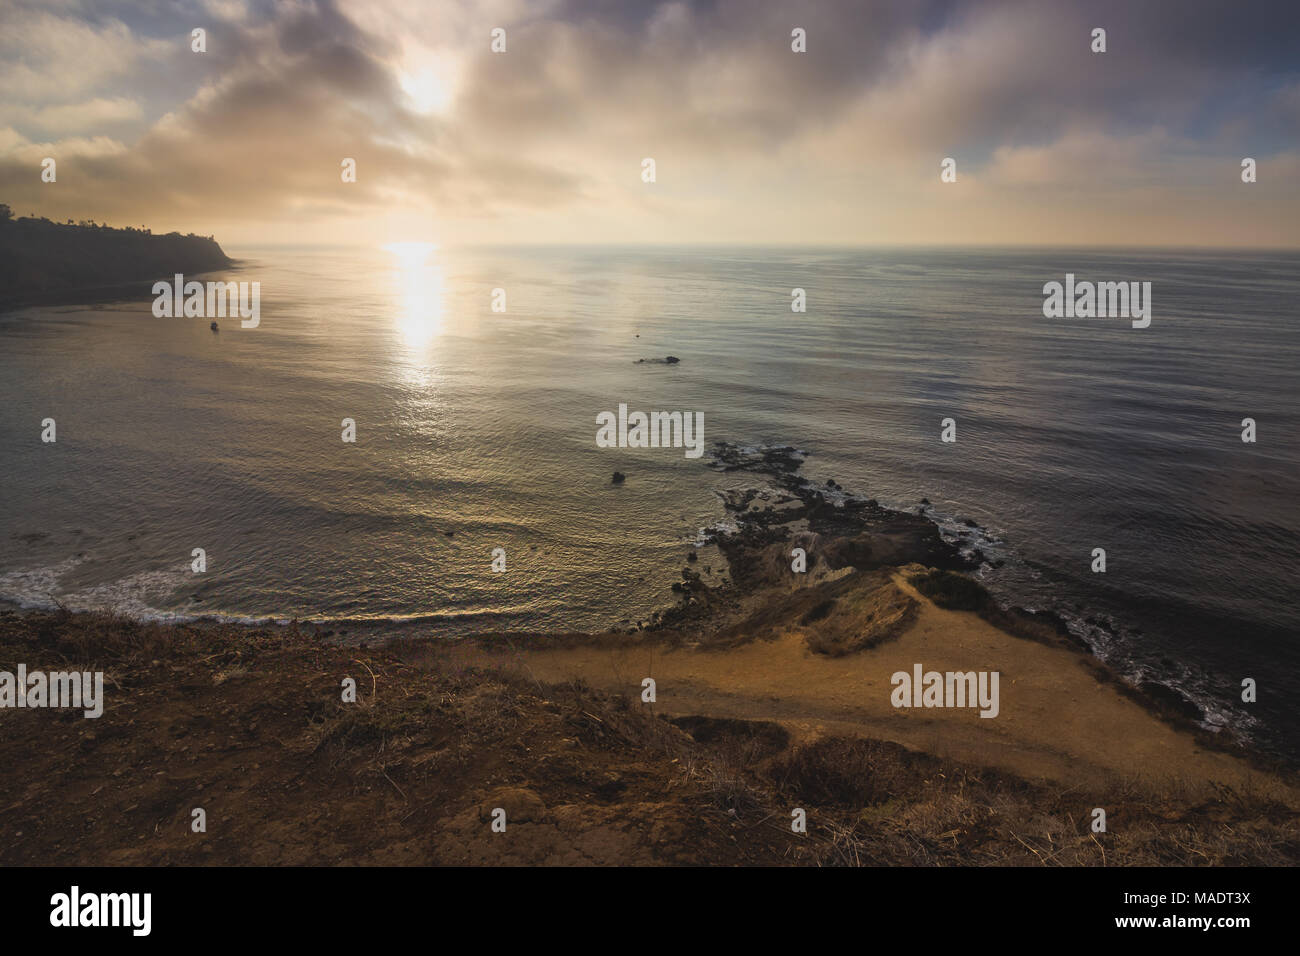 Scenic overlook of Southern California's coastline at sunset on a cloudy day from Flat Rock Point, Palos Verdes Estates, California - Stock Image